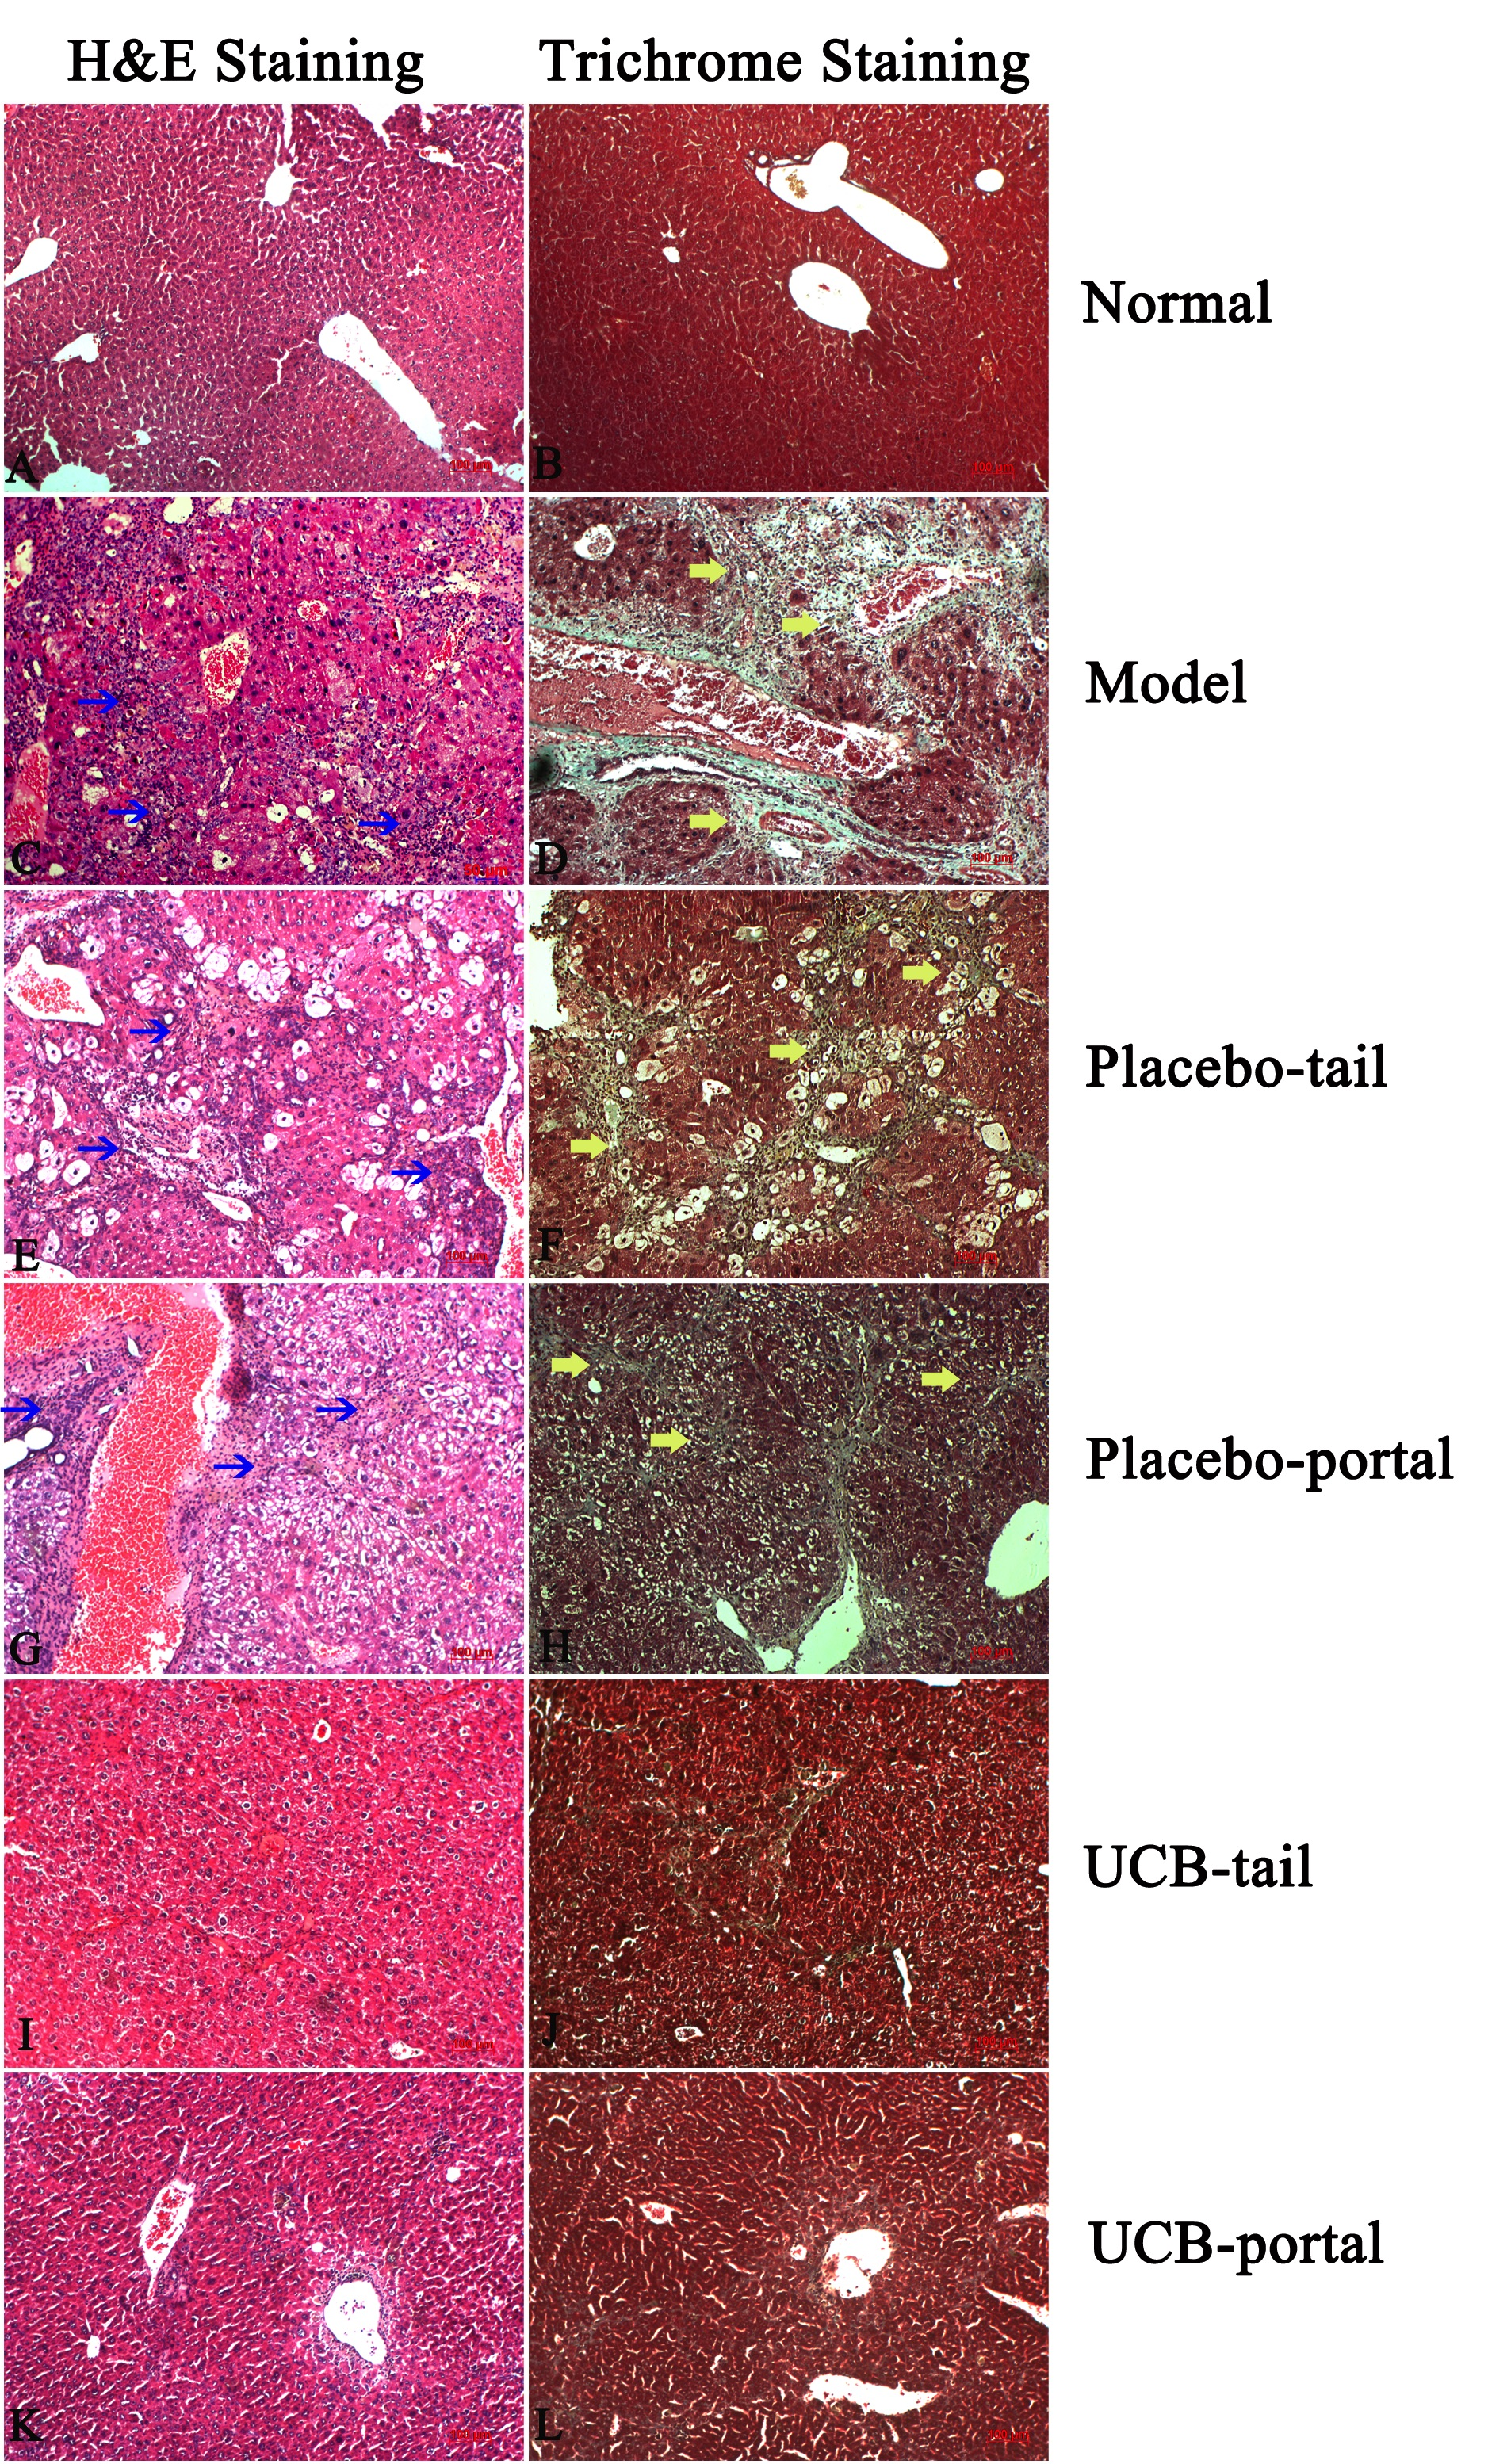 Figure 5 H&E and Trichrome staining after 21 days of treatment